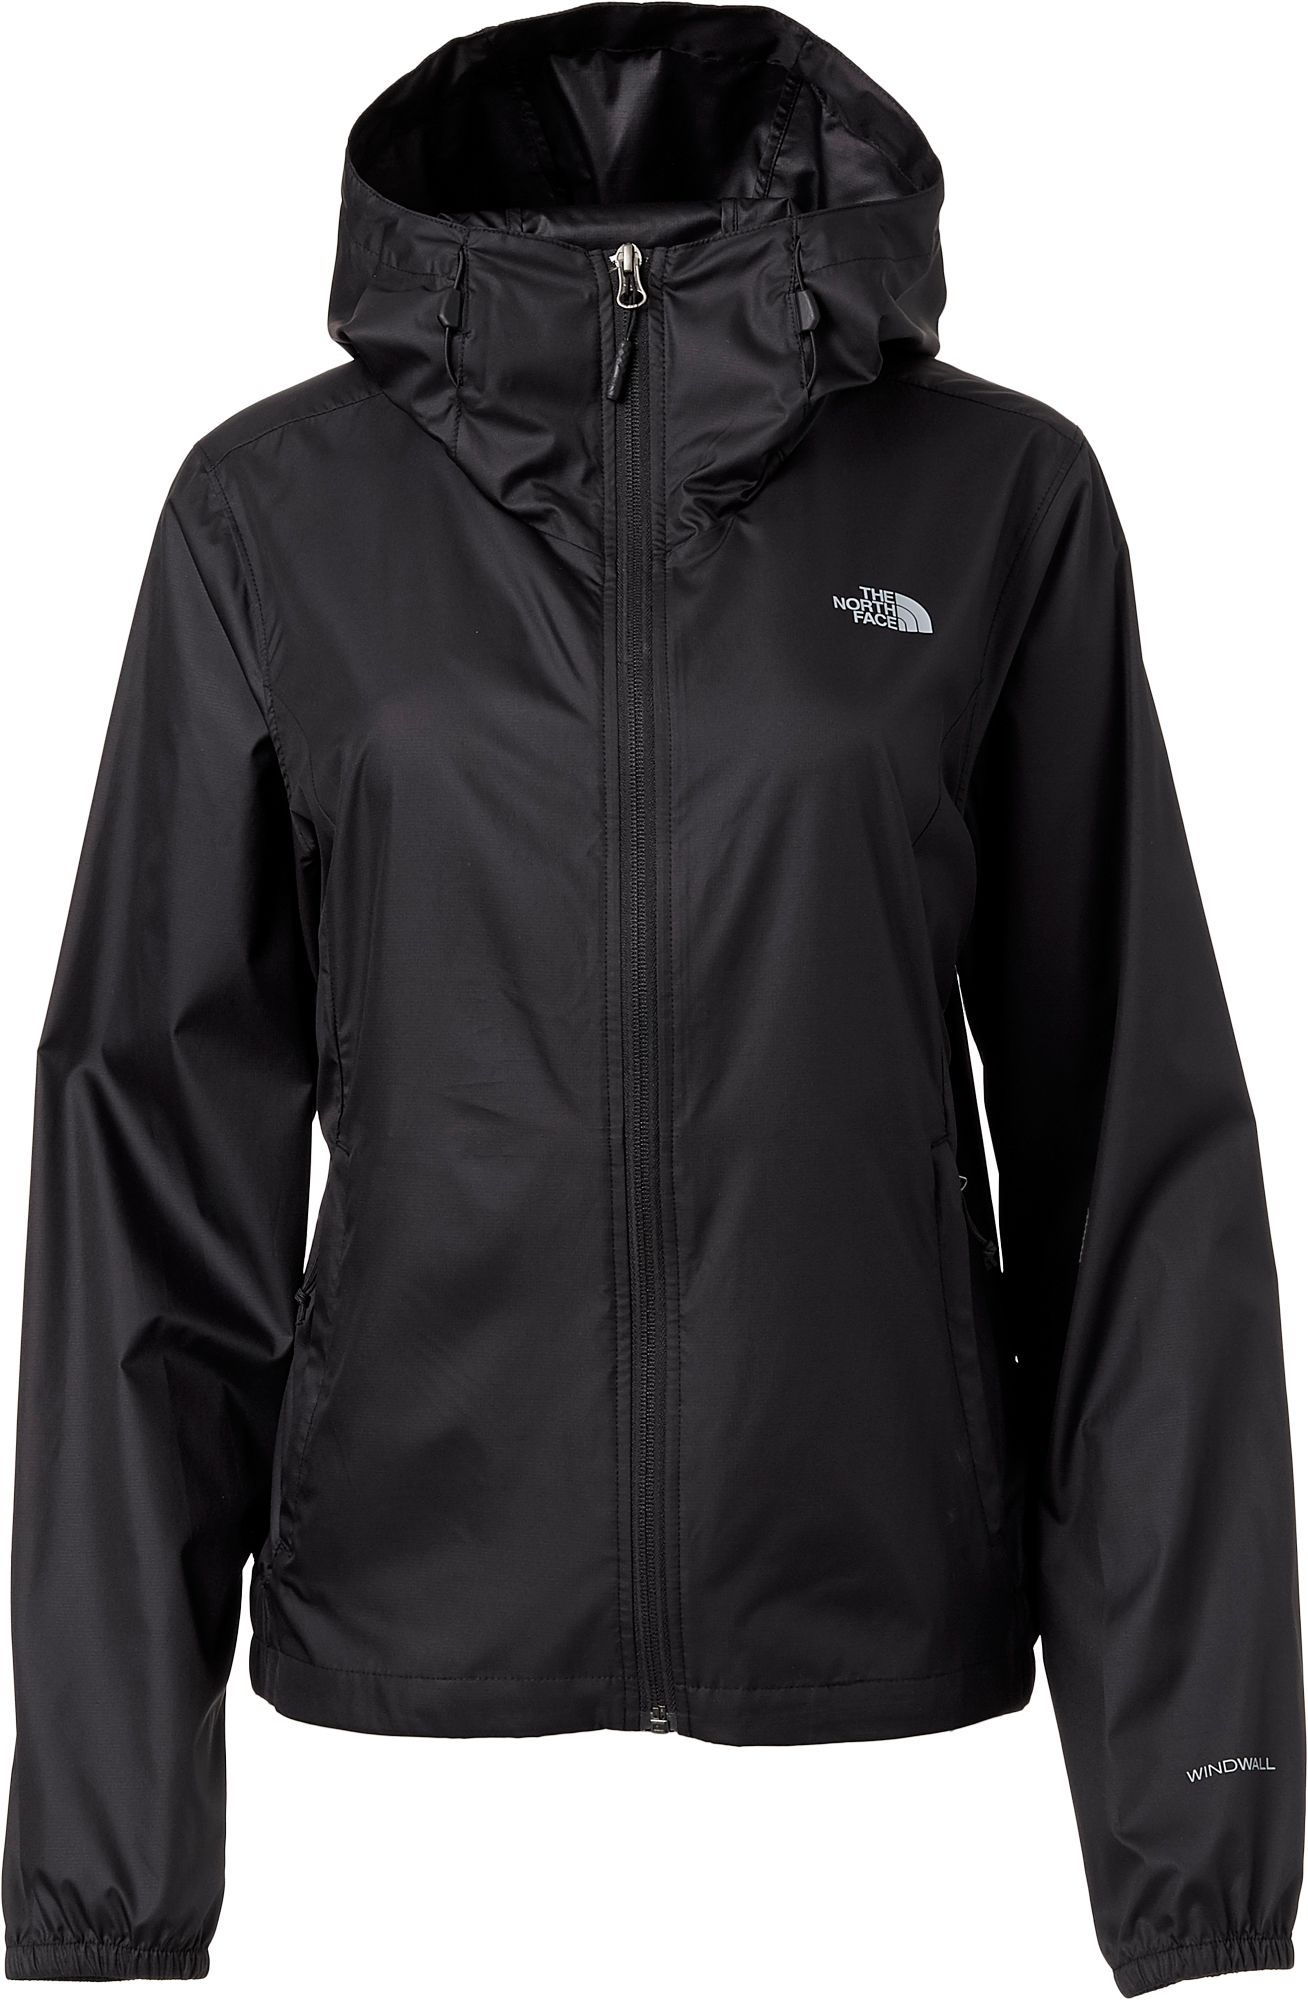 4c475e383 The North Face Women's Cyclone 3.0 Hooded Jacket, Size: Small, Red ...